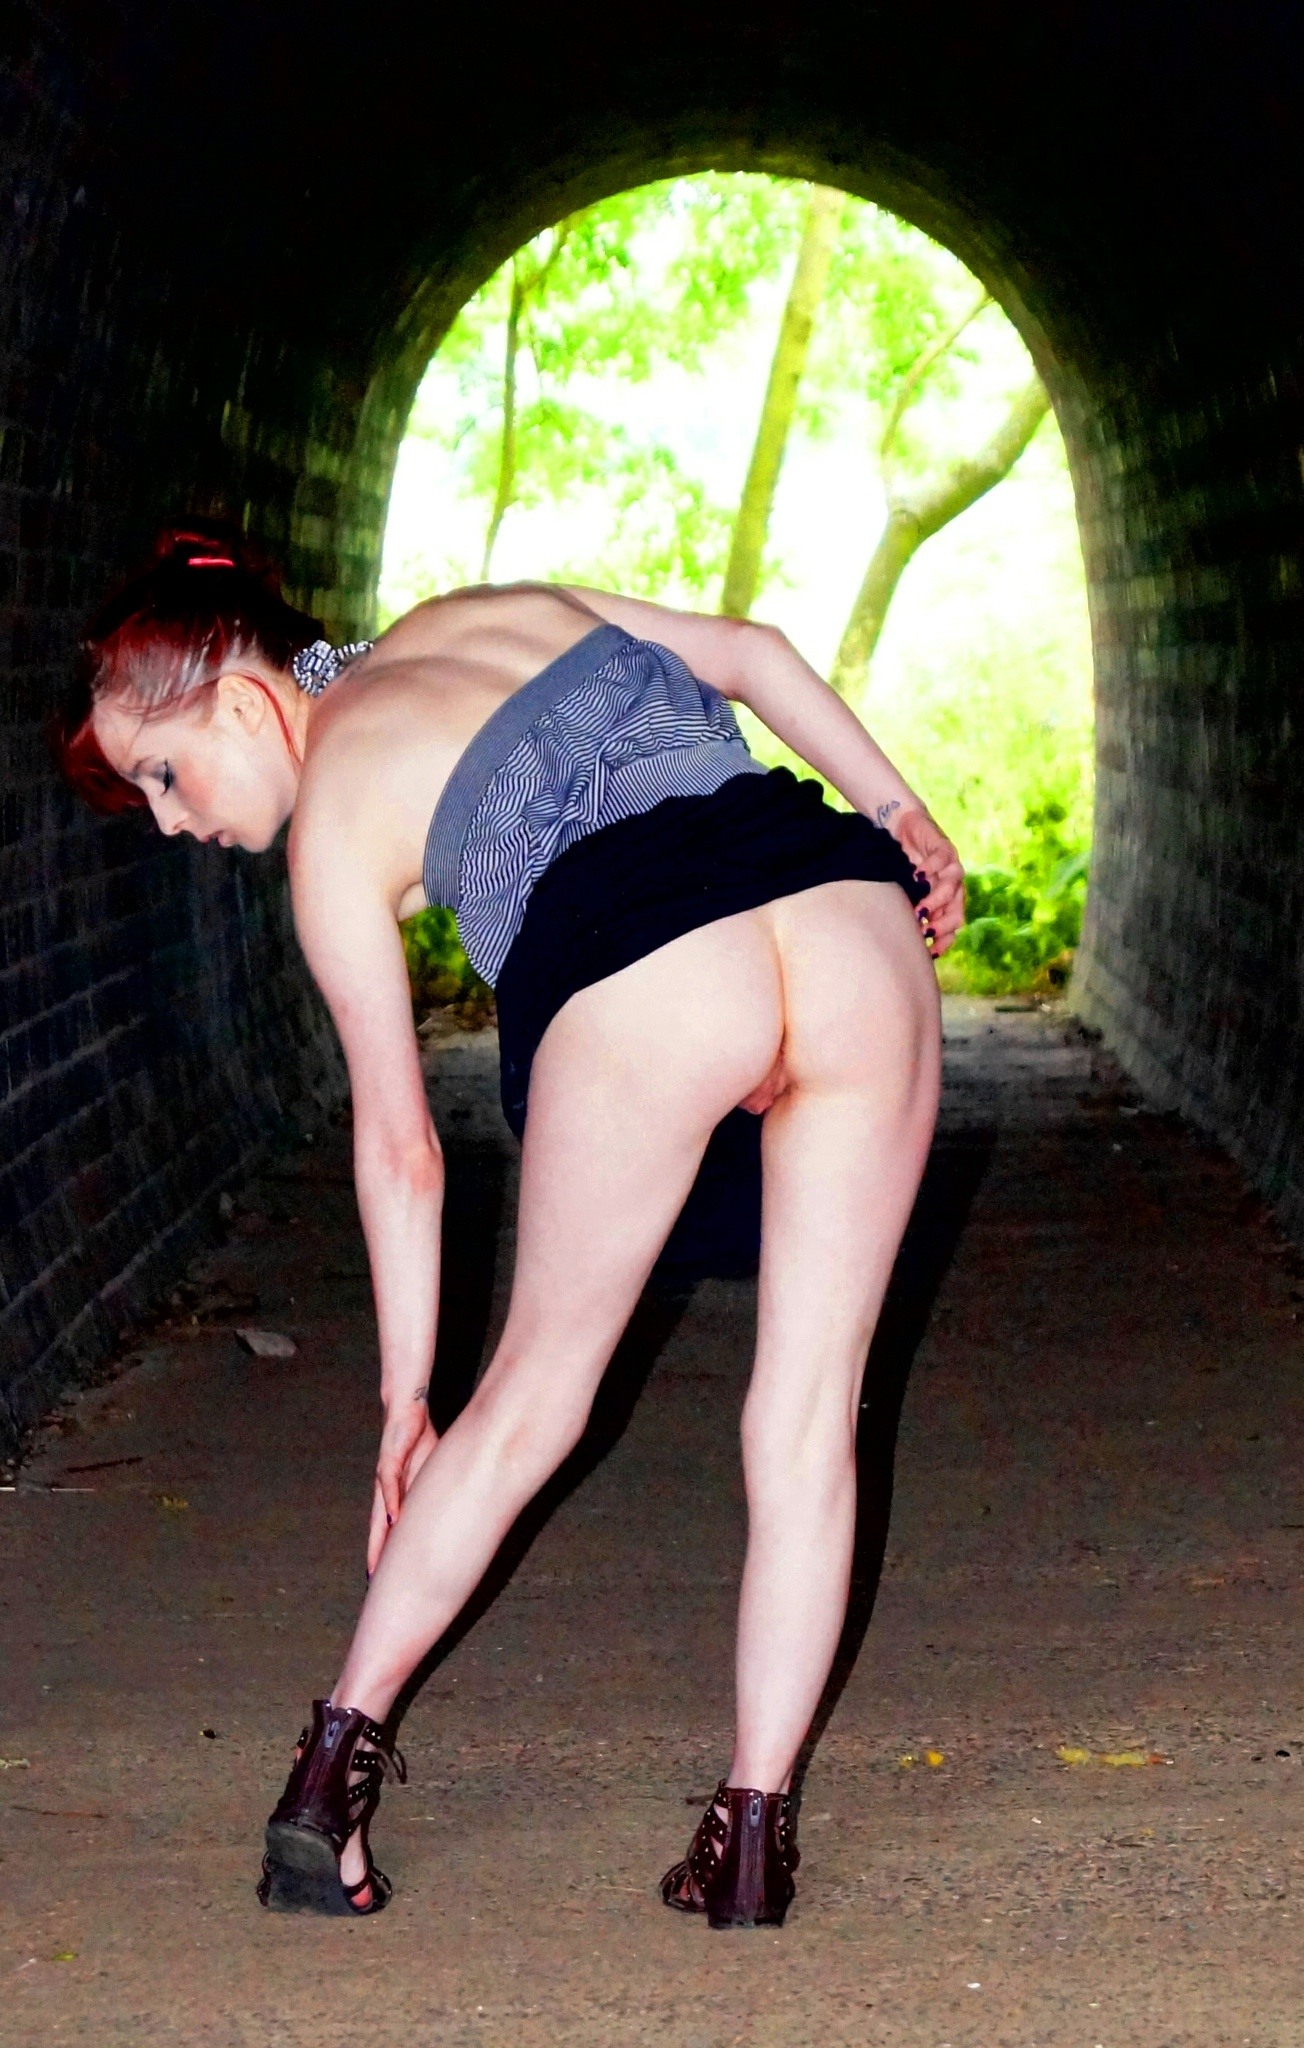 Flashing in the arched tunnel, under the railway. by Hobbytog59